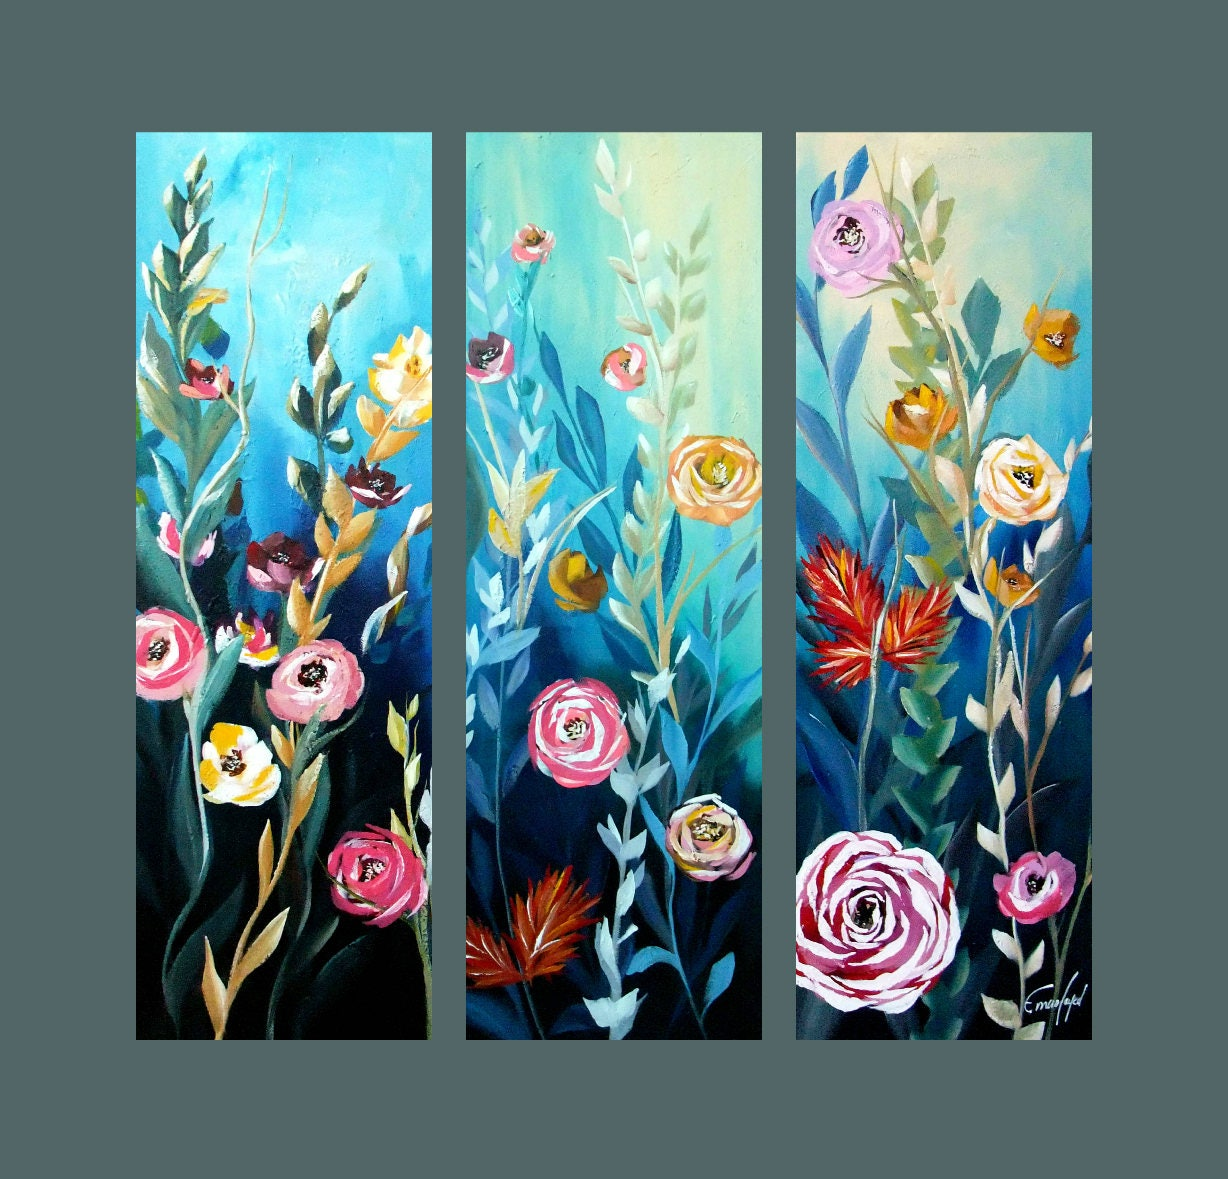 Sale original painting set of 3 abstract flower painting modern painting contemporary art wall decor 36x36 ready to hang